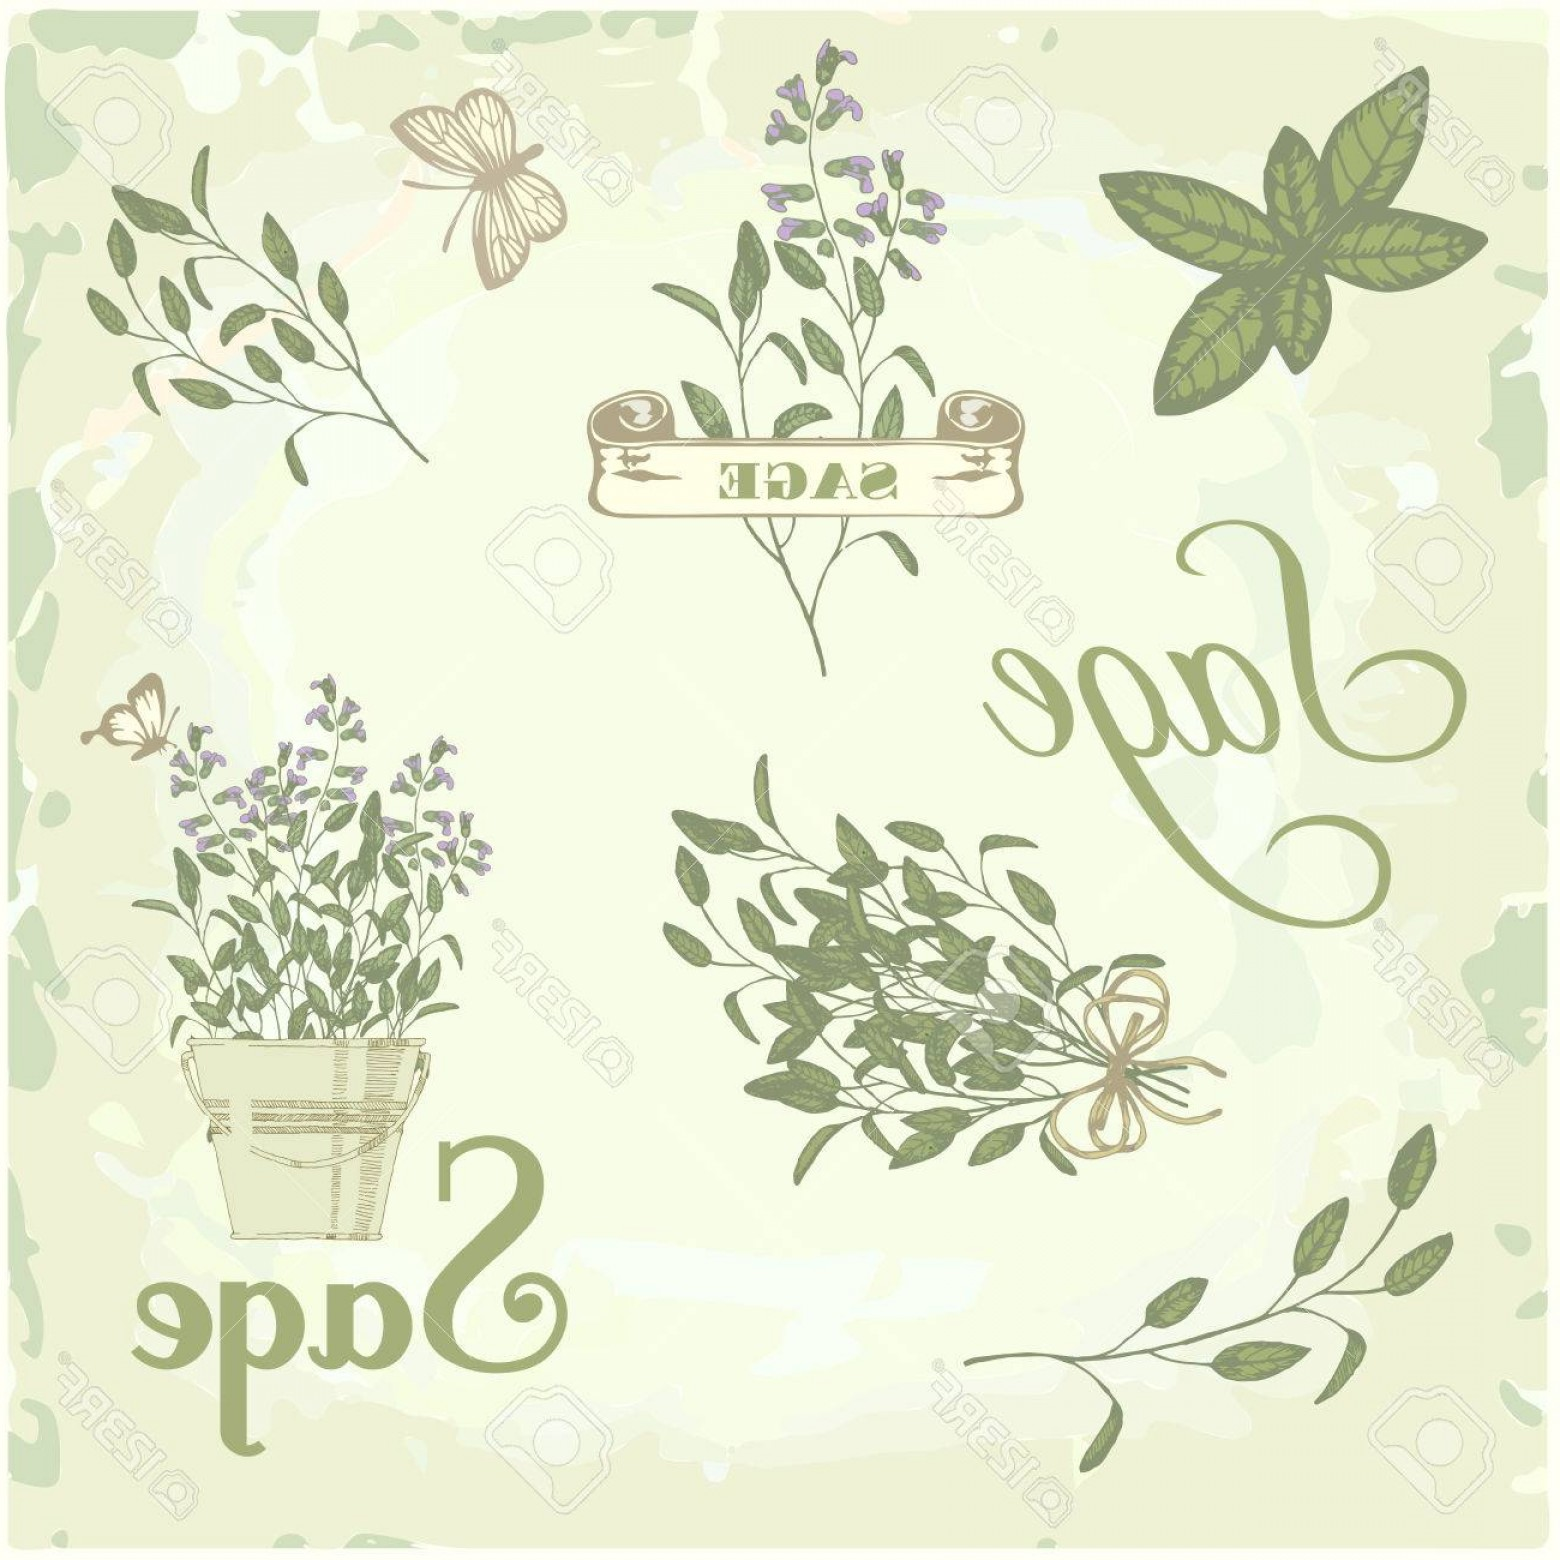 Sage Plant Vector: Photosage Salvia Clary Sage Herb Plant Background Packaging Calligraphy